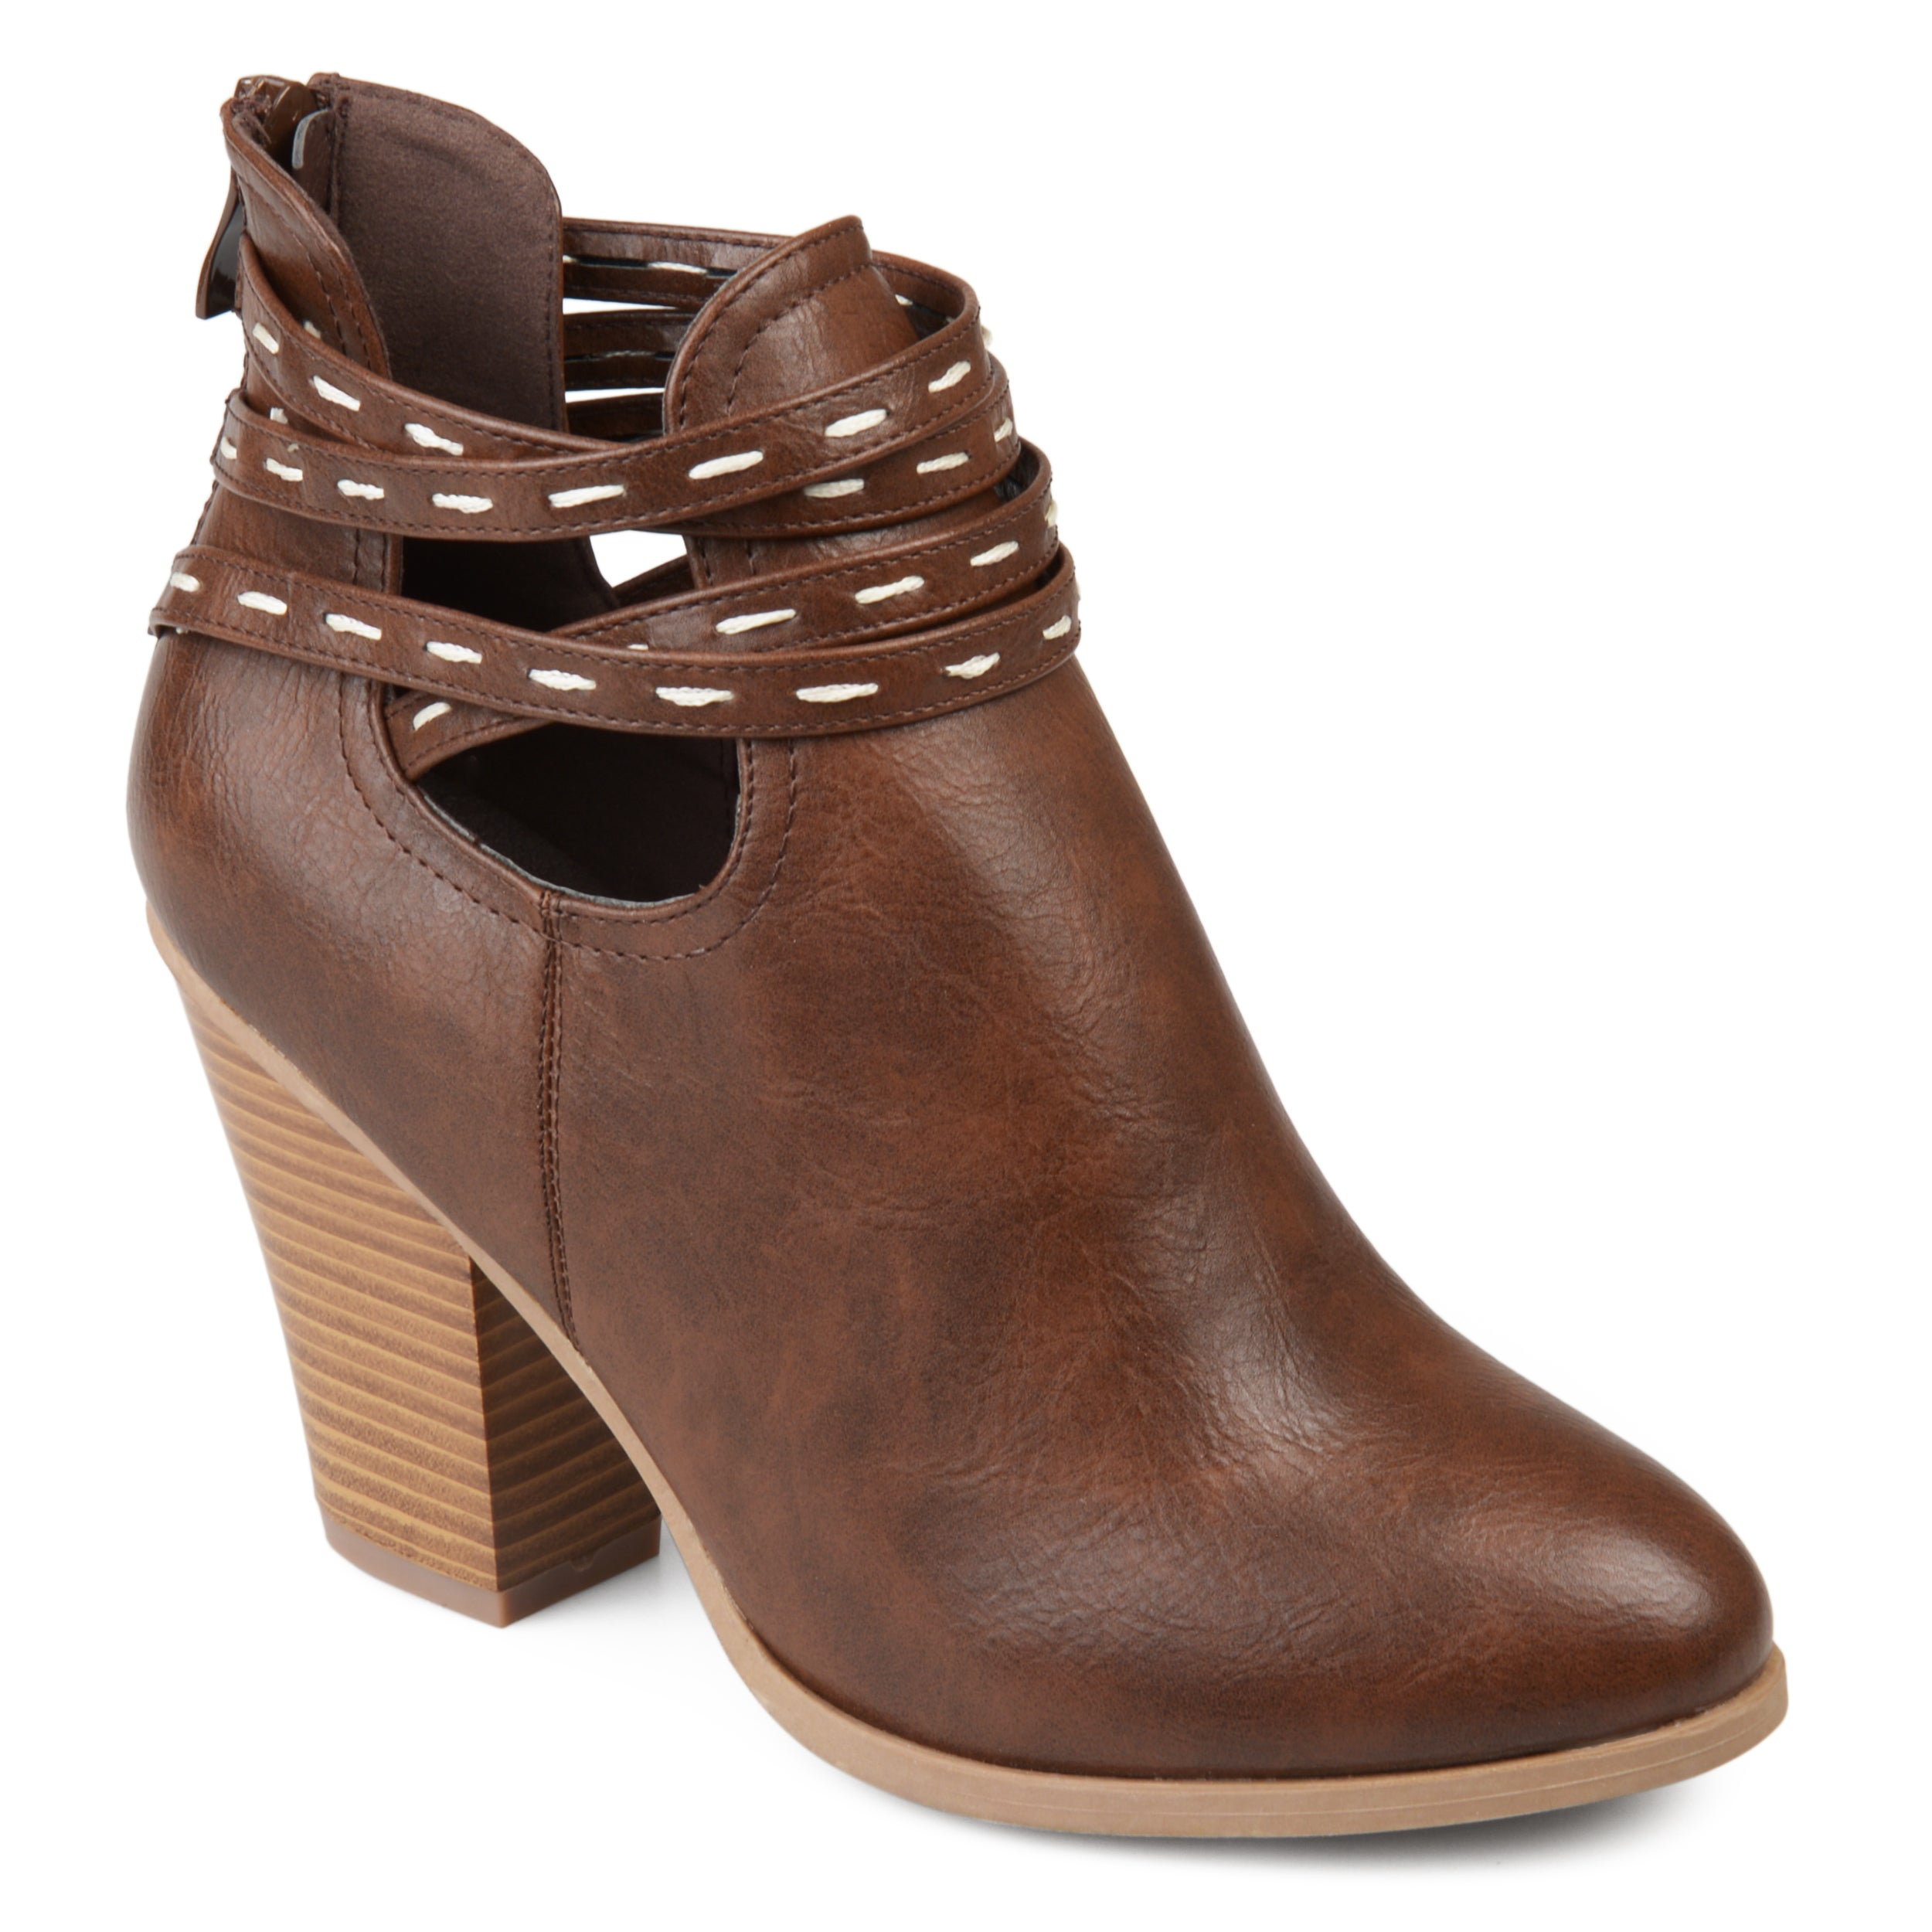 Journee Collection Larkyn ... Women's Ankle Boots clearance supply genuine for nice cheap price shop tumblr sale online xKbv5